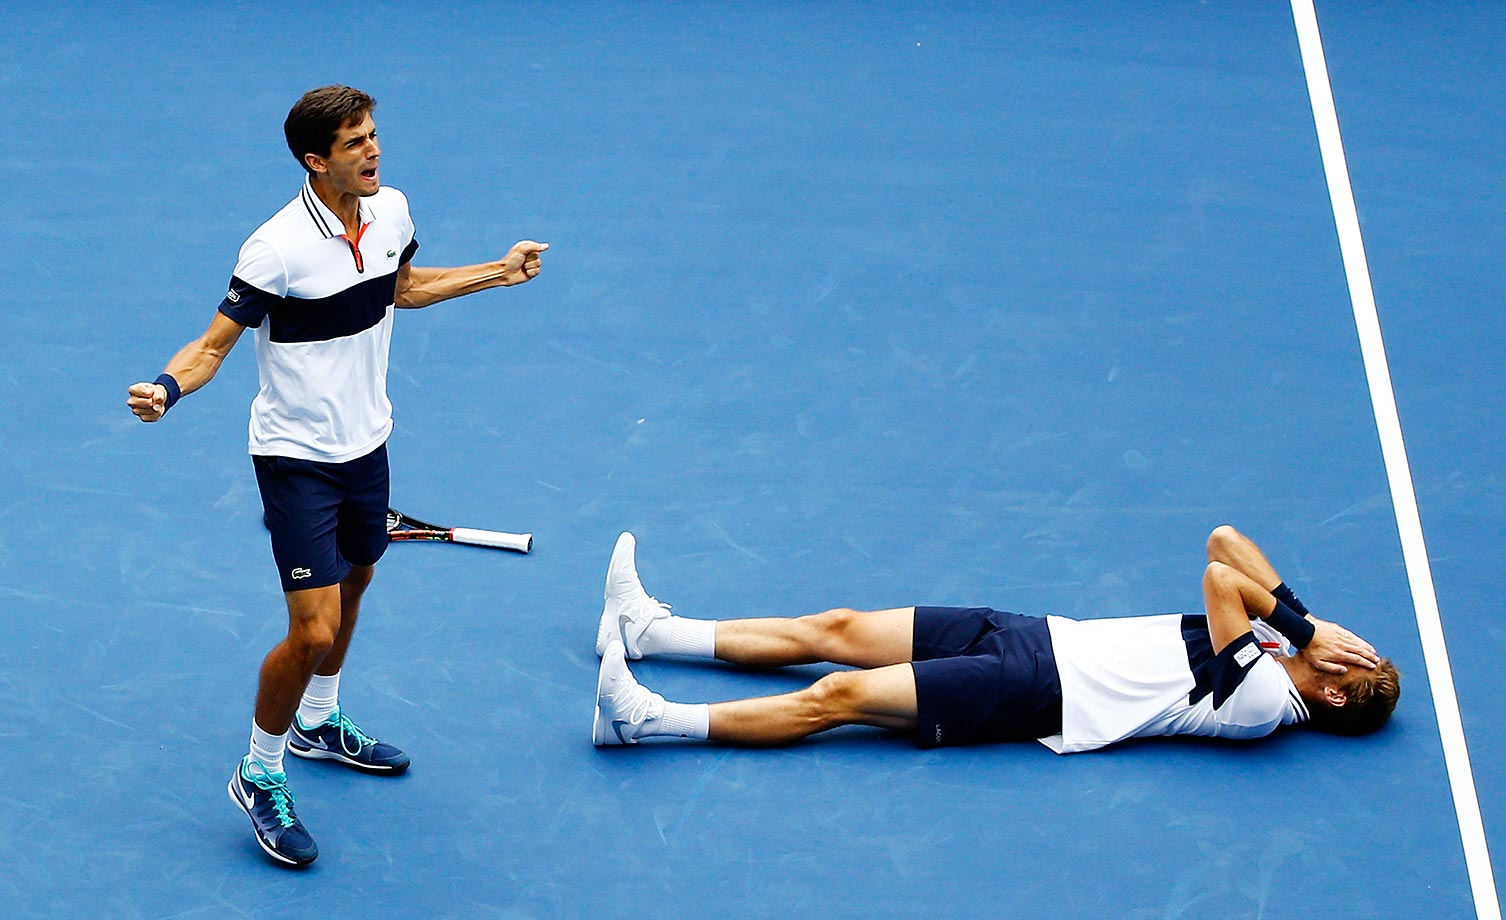 Pierre-Hugues Herbert (left) and Nicolas Mahut celebrate winning their doubles match against Jamie Murray and John Peers at the U.S. Open.